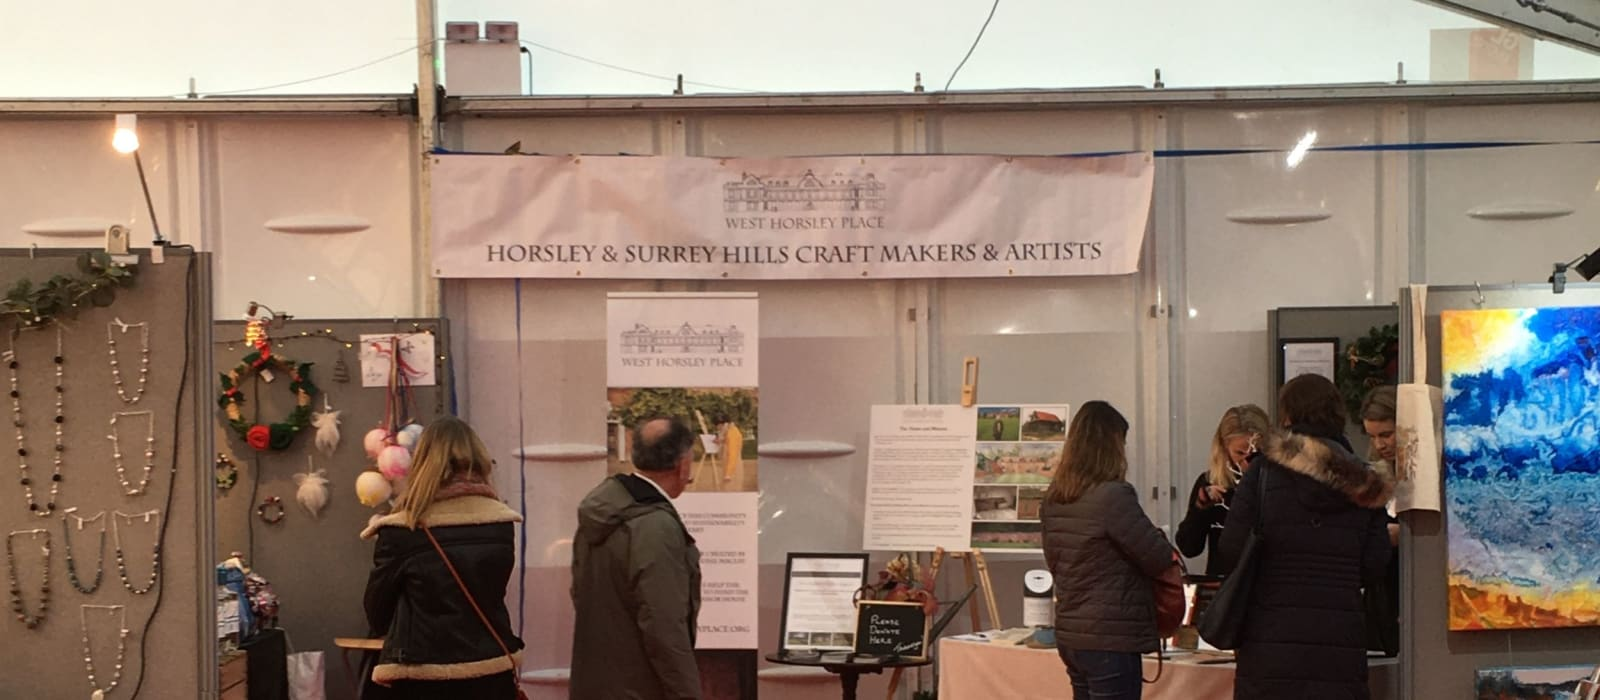 West Horsley Place is Delighted to Present a Dedicated Area for Horsley & Surrey Hills Craftmakers and Artists at the Craft Fair